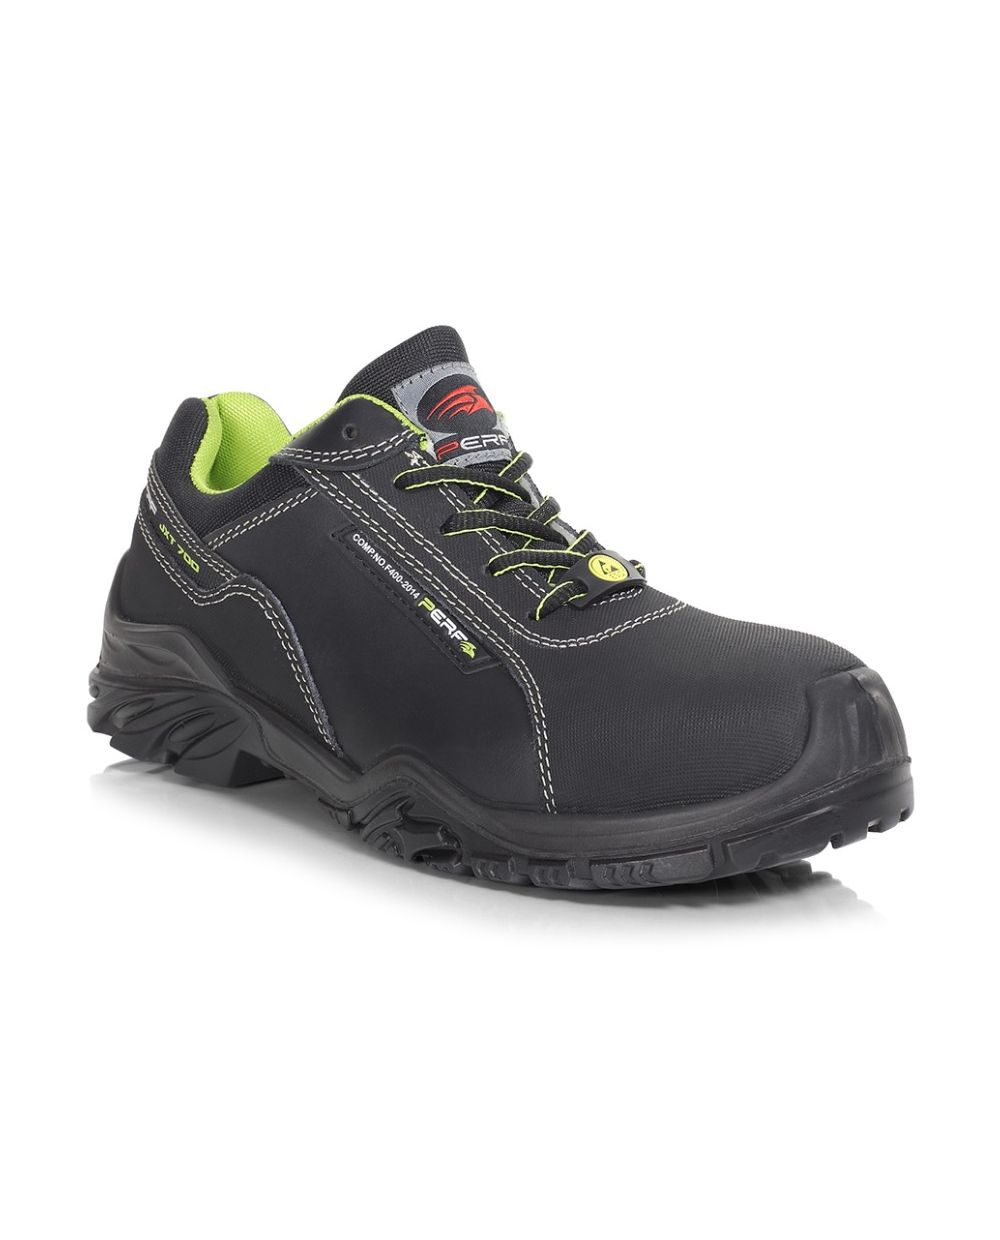 Endurance Low – ESD Safety Trainer